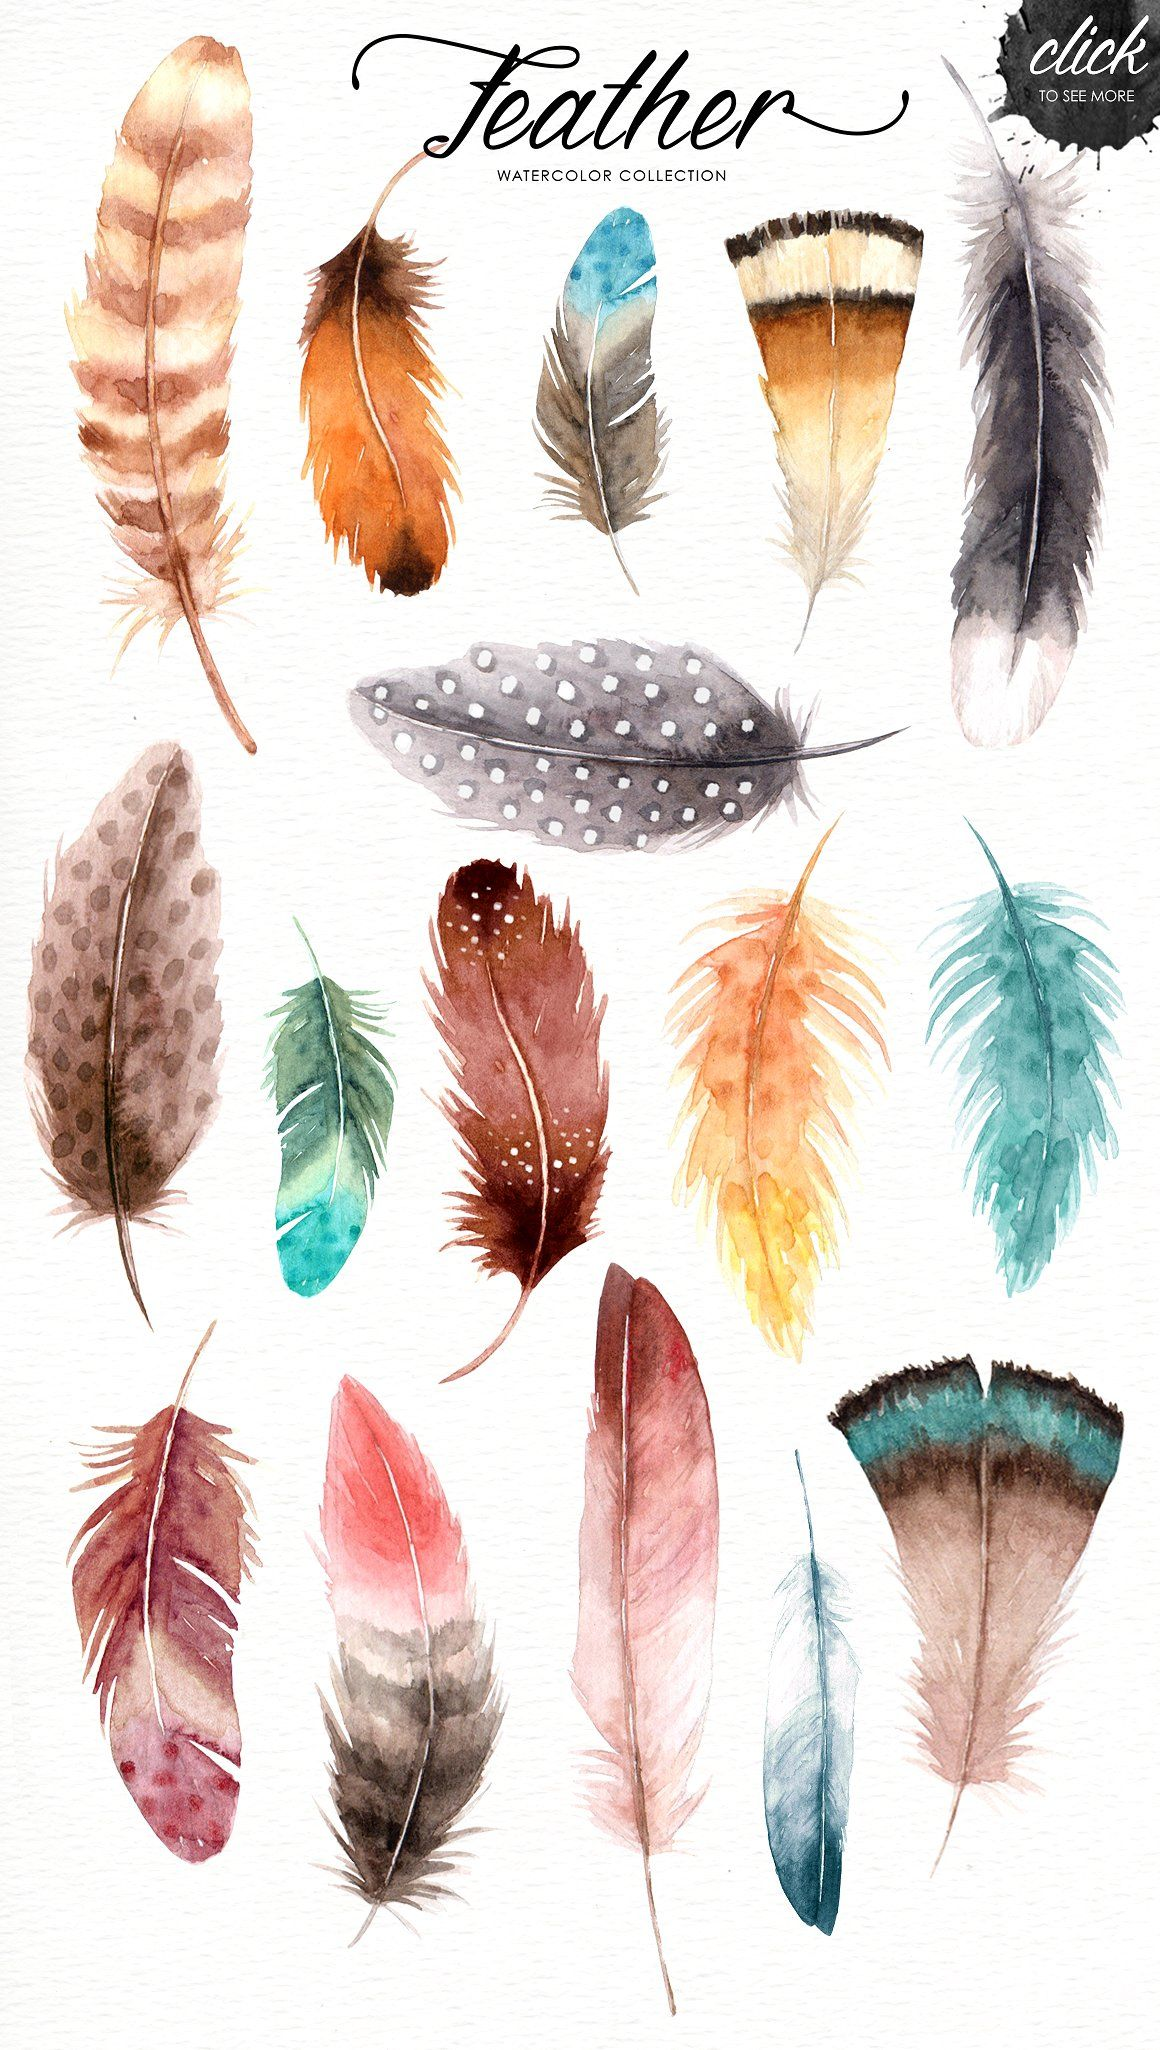 Feather Watercolor Collection Risunok Pera Pero Zhivopis